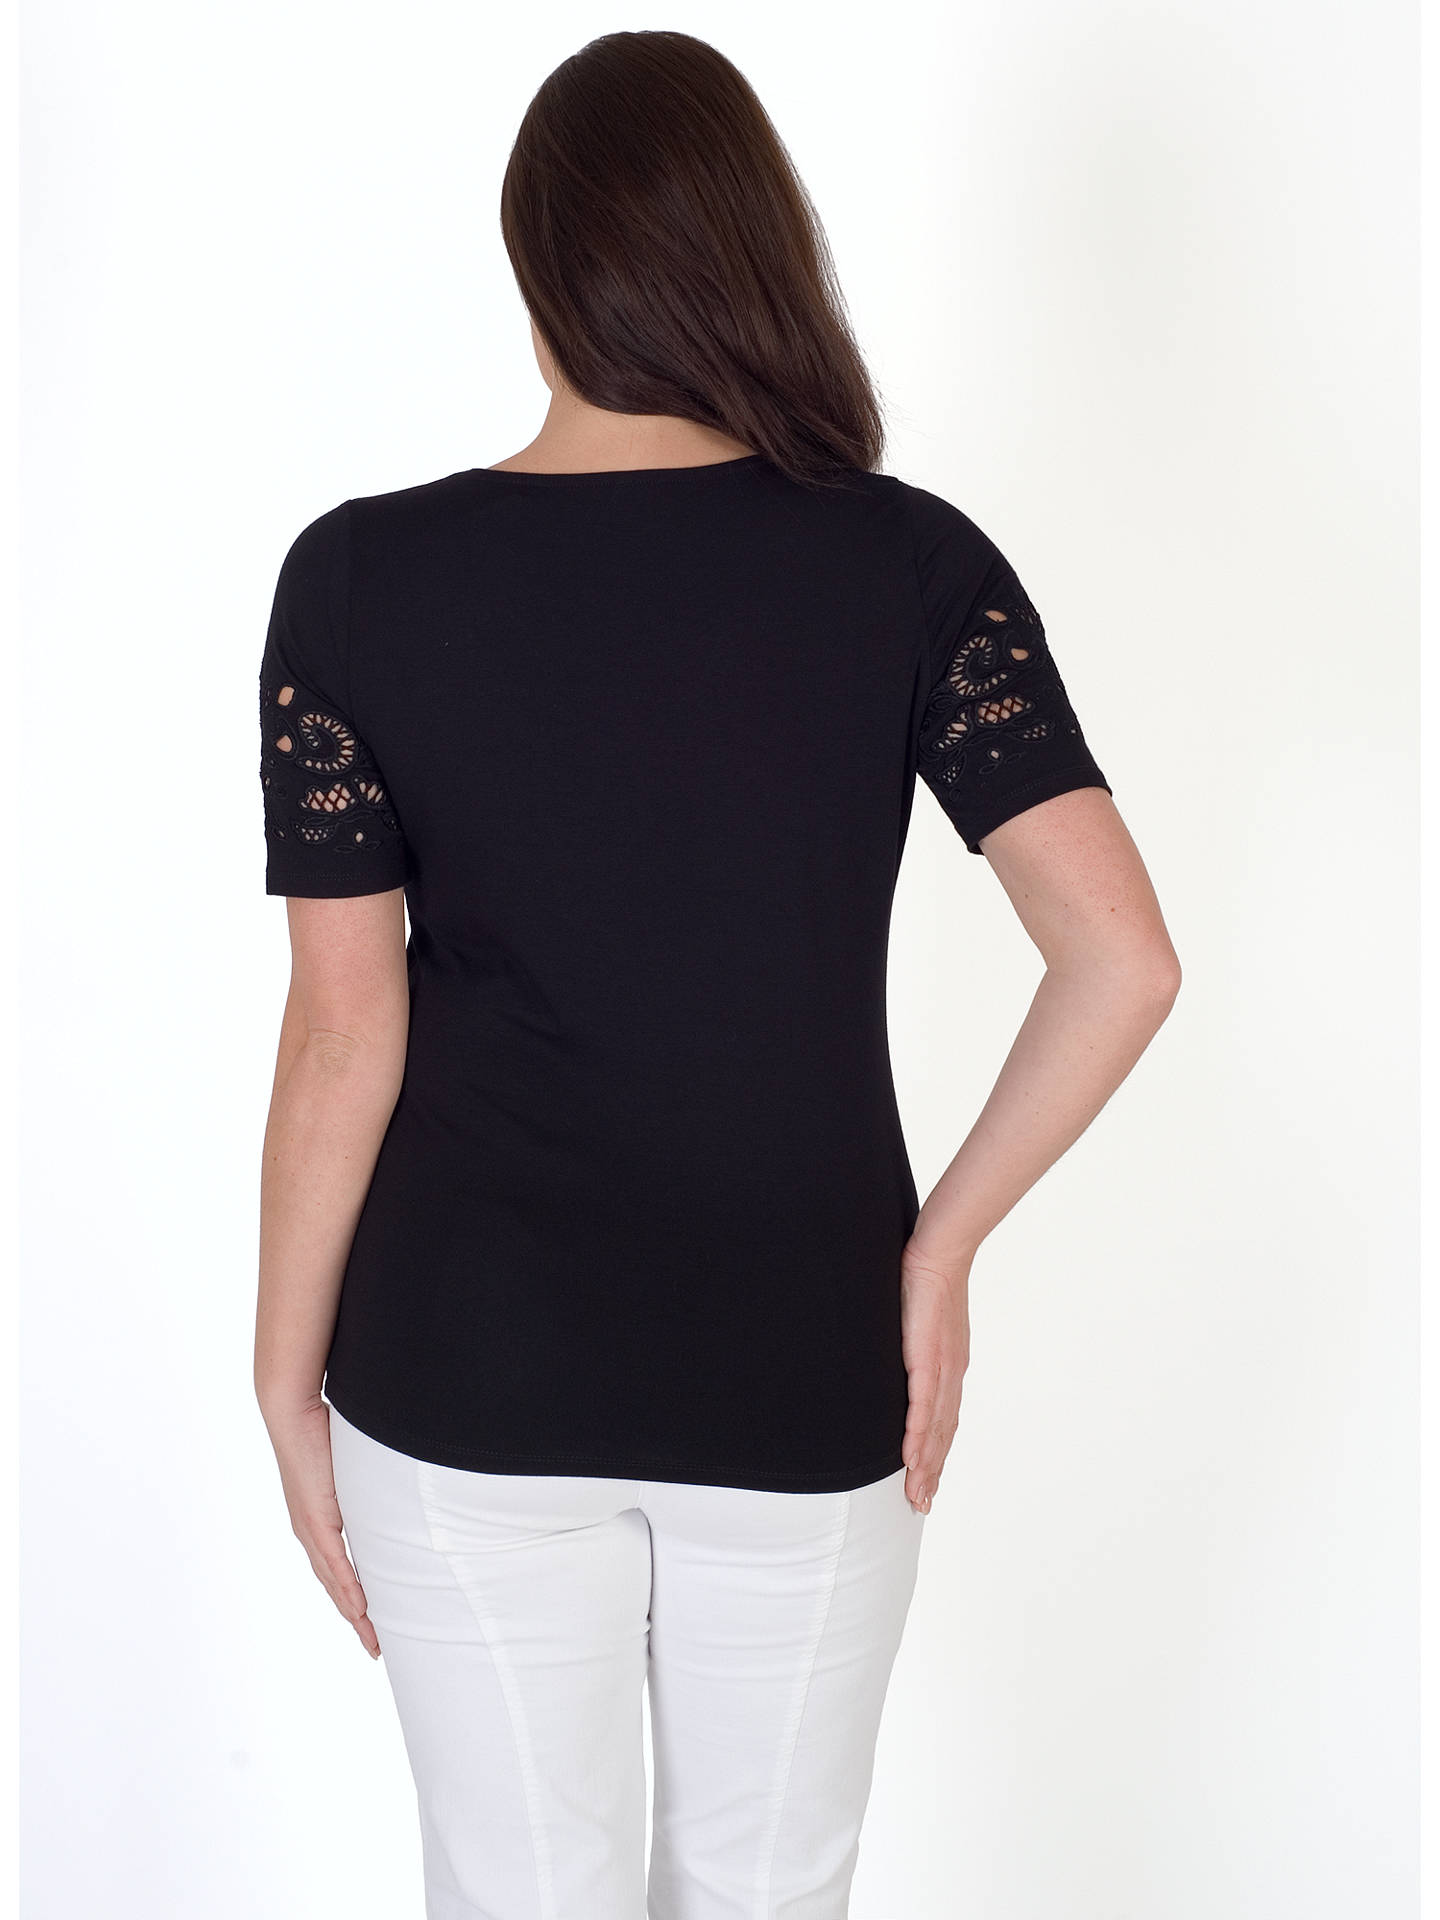 BuyChesca Cut-Out V-Neck T-Shirt, Black, 12-14 Online at johnlewis.com